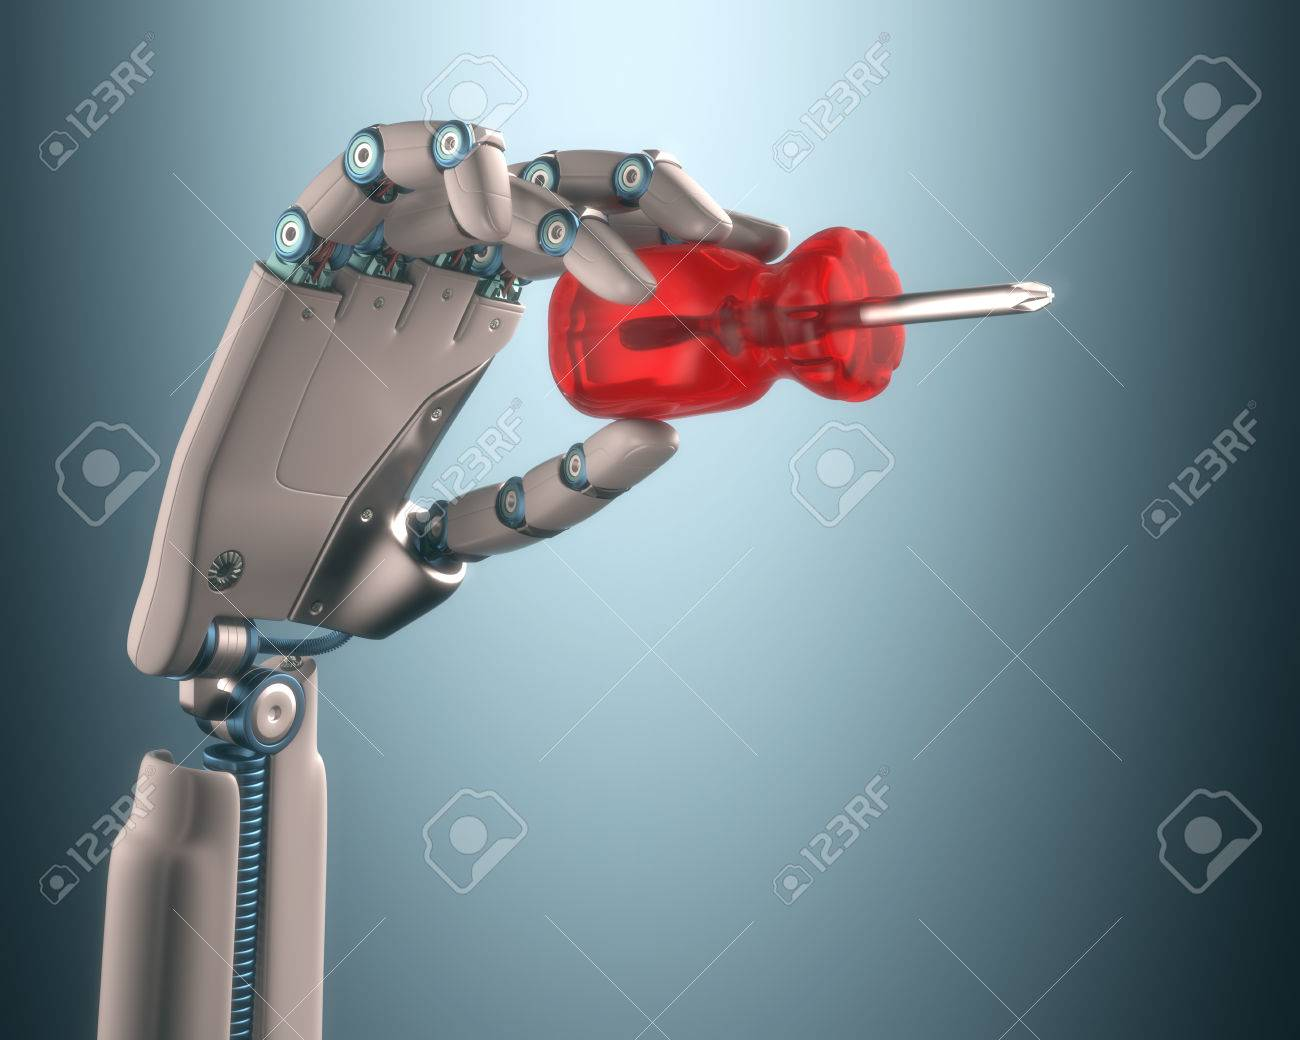 Robot hand holding a screwdriver on the concept of industrial automation. - 32882540